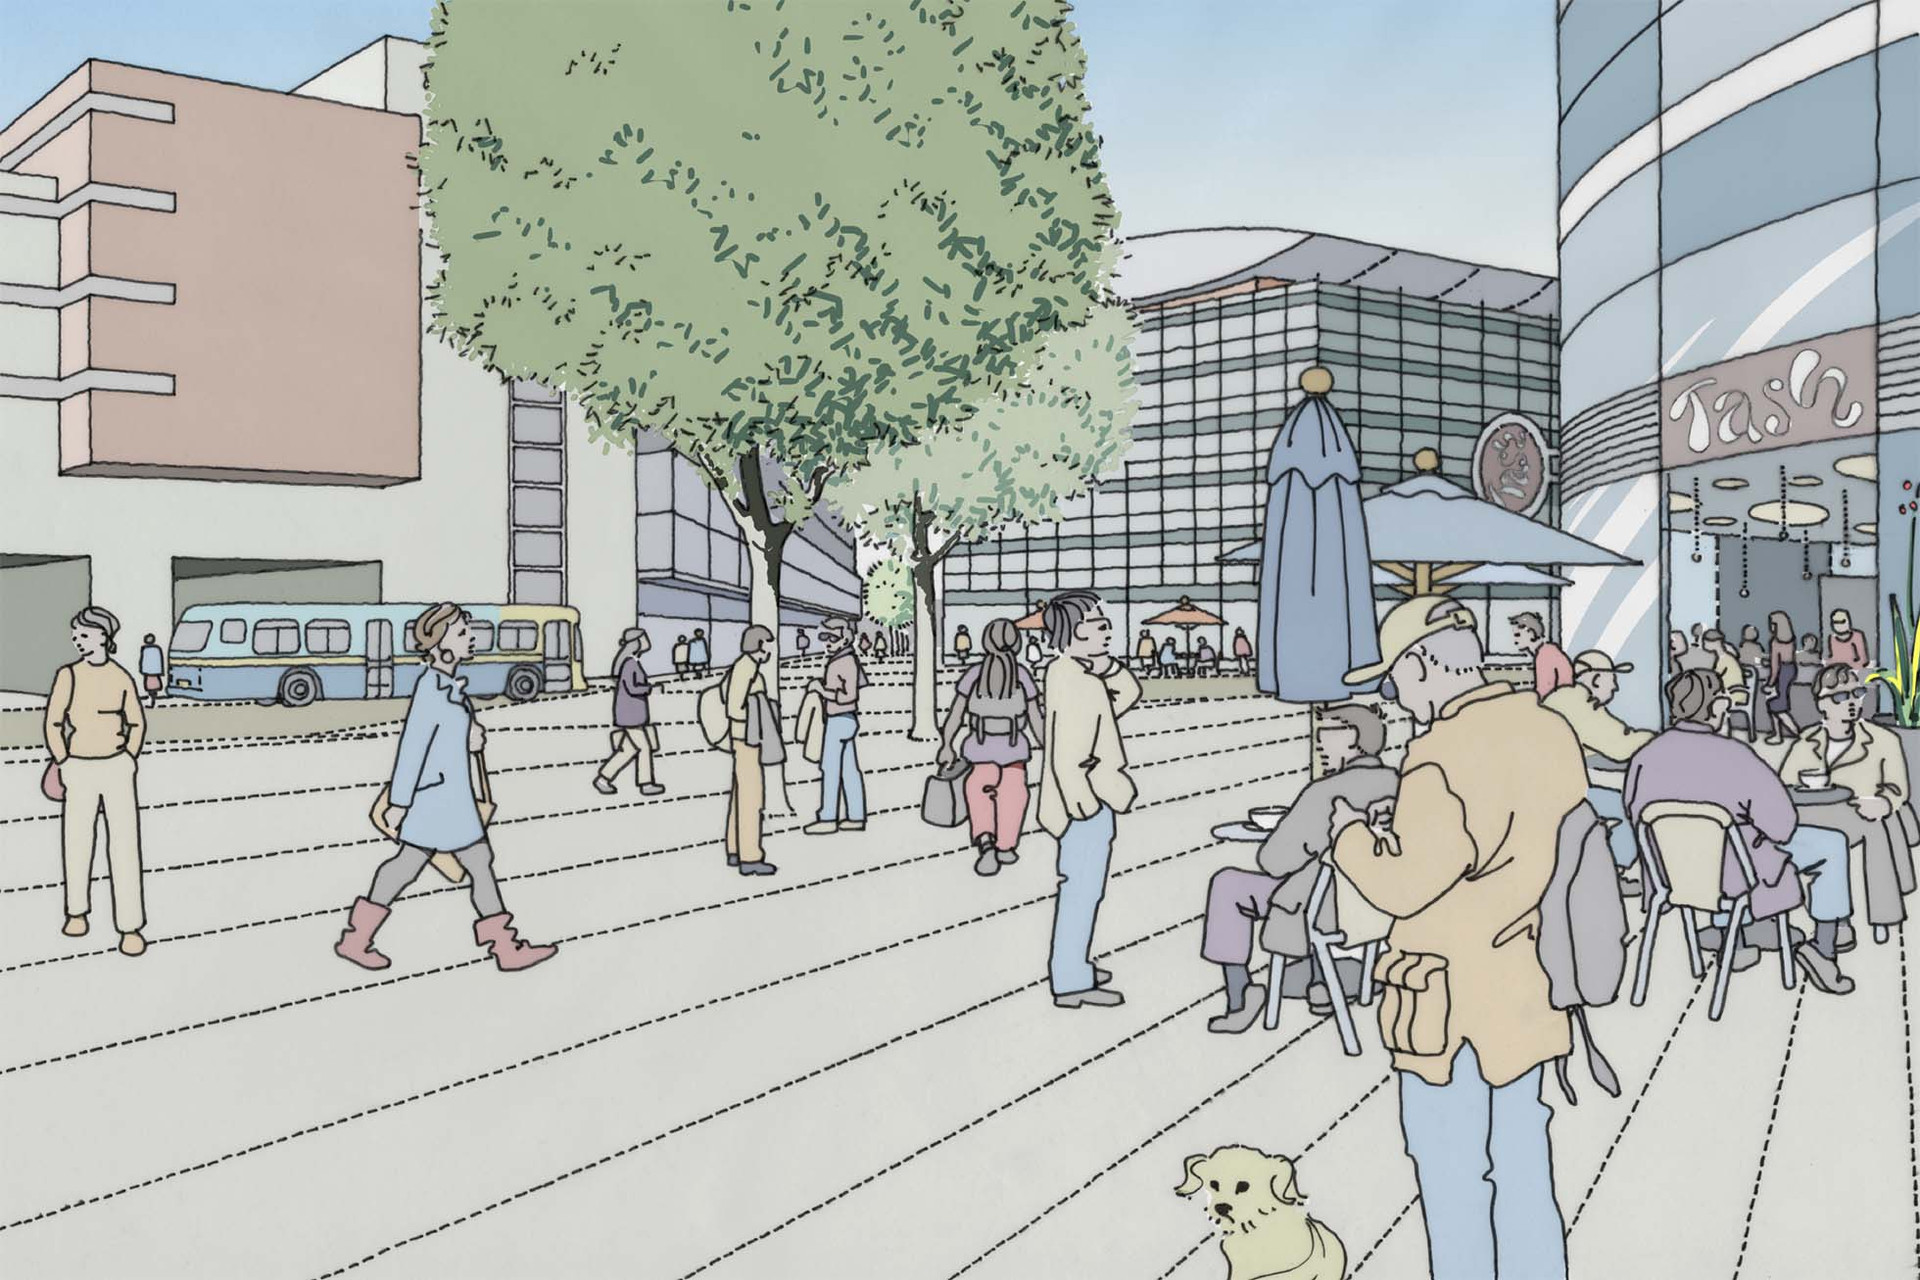 Traffic-free public shopping plaza perspective drawing